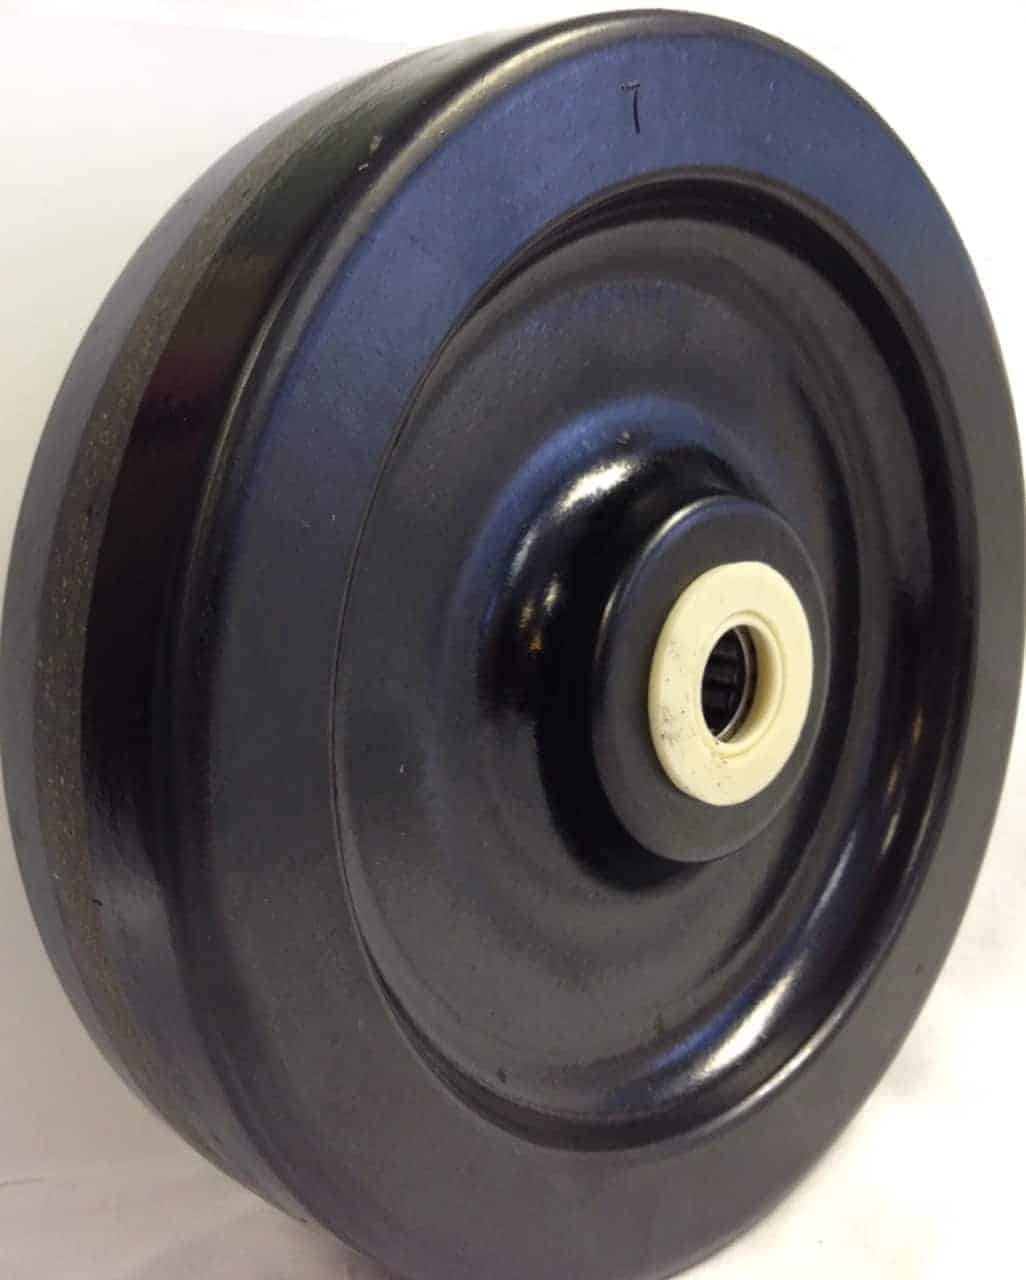 8″ Phenolic Wheel With 3-1/4 Hub 1″ Roller Bearing 2500 Lbs Cap